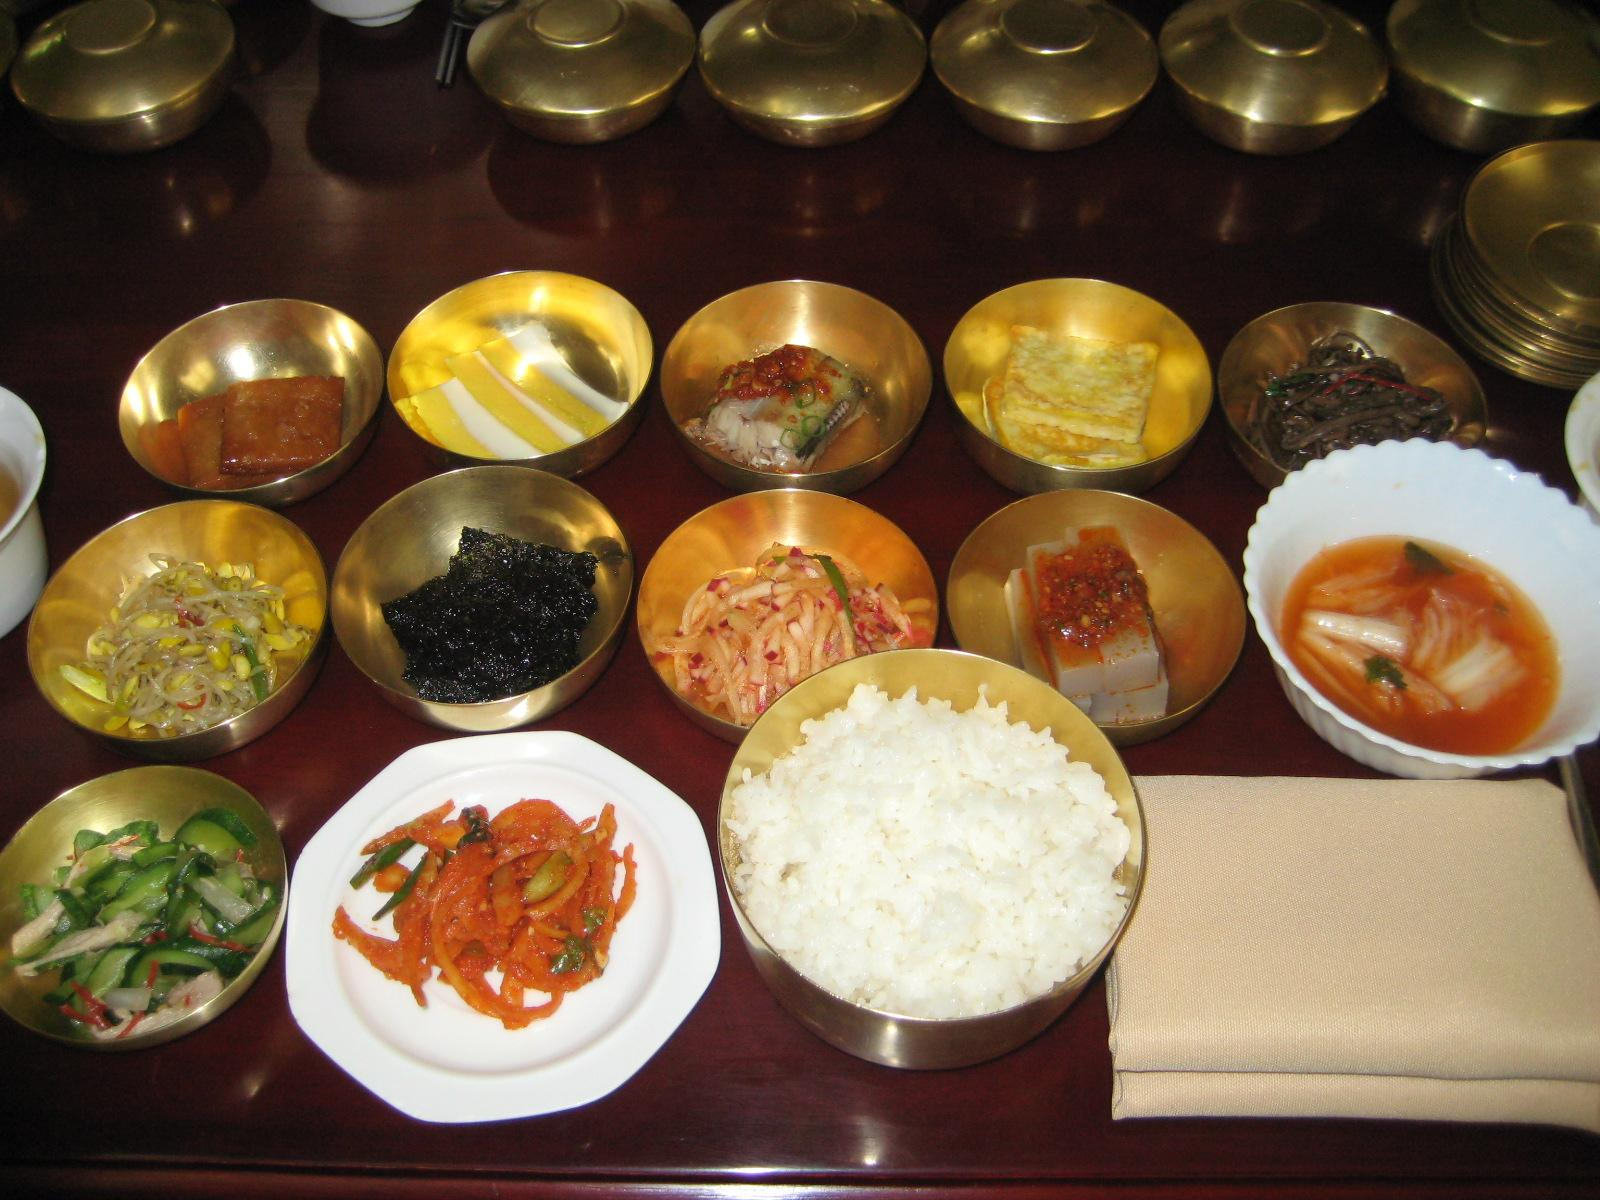 Unlike all the Koreans I was traveling with, I have no idea what any of this Korean food is.  Although I'm pretty sure that white one is rice.